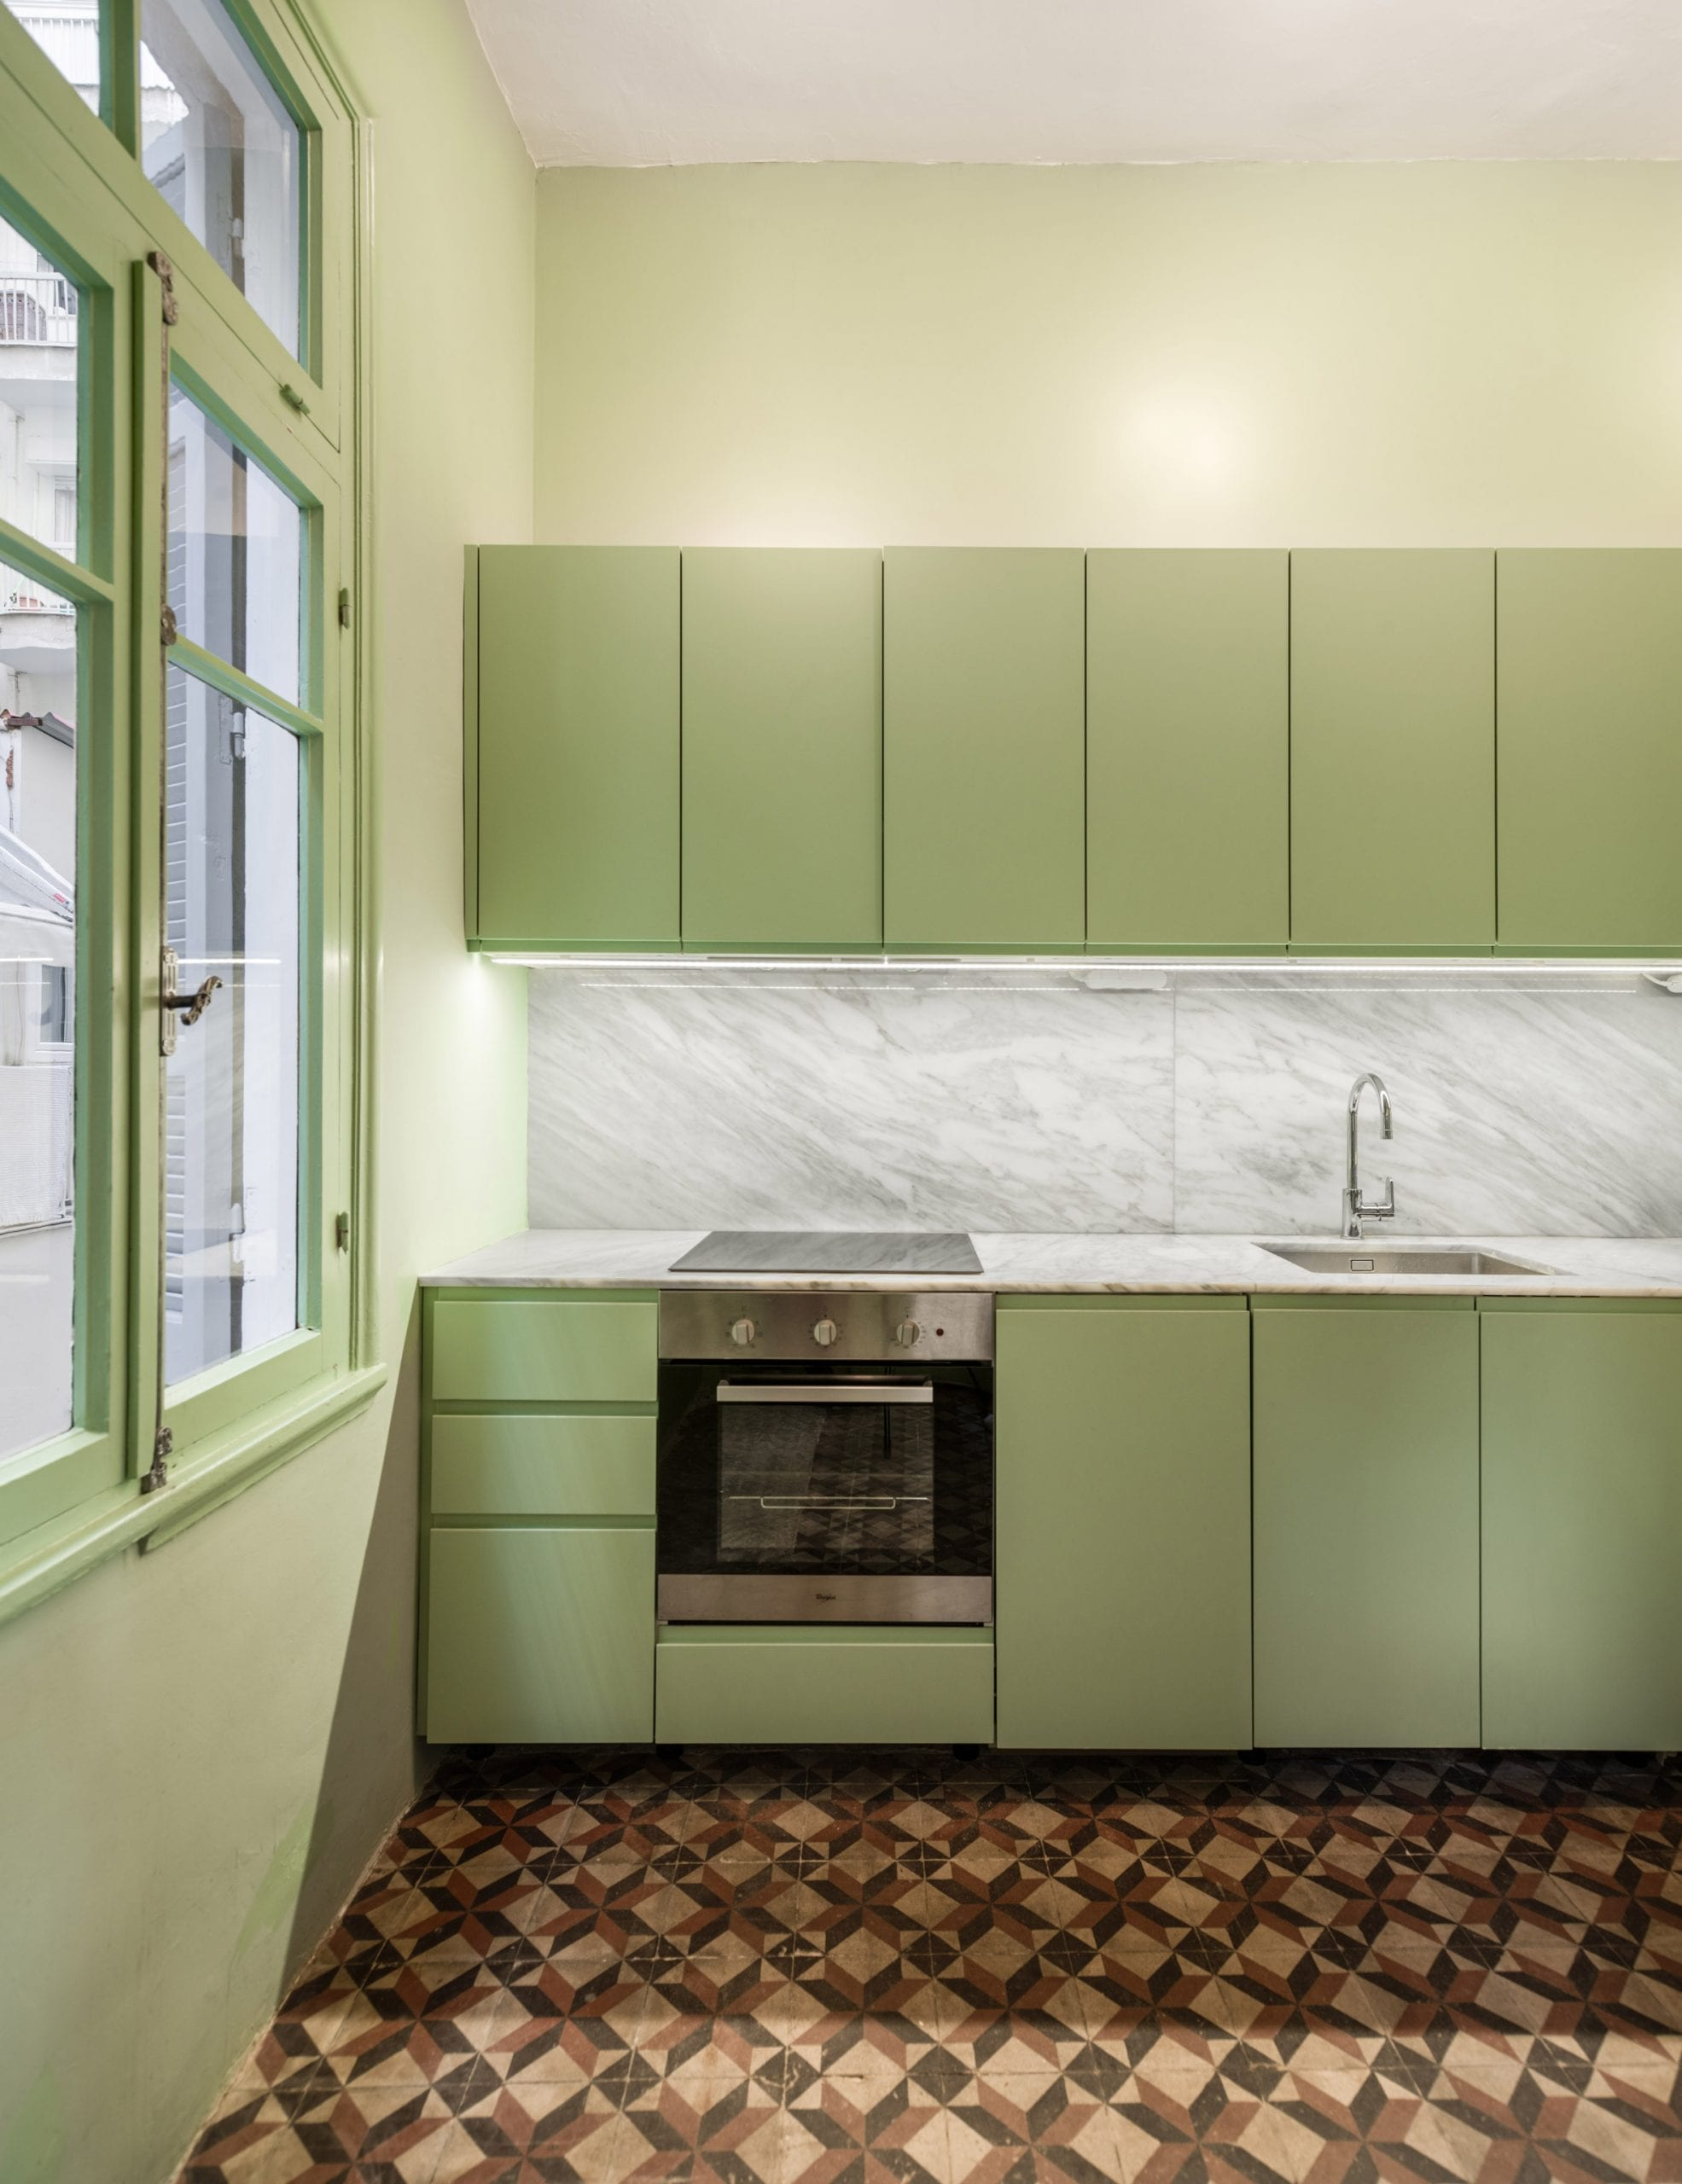 Giannikis used pastel greens in the one-wall kitchen